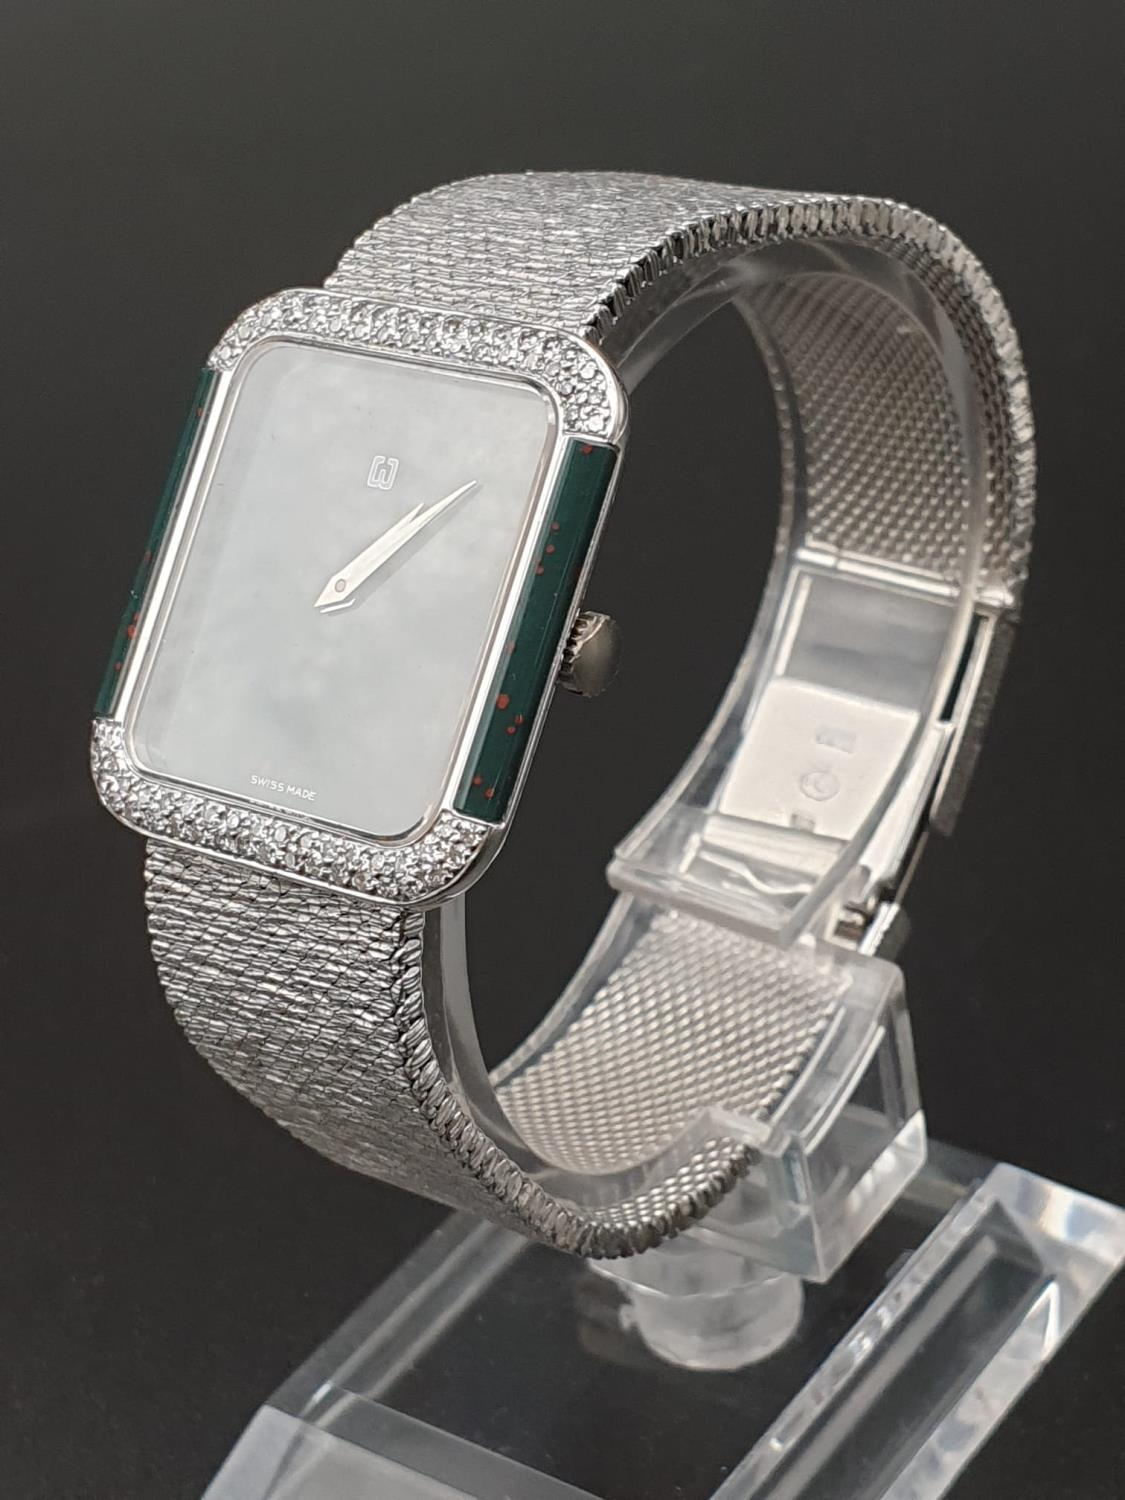 AN 18K WHITE GOLD DRESS WATCH WITH HALF DIAMOND BEZEL AND SOLID GOLD STRAP. 26MM - Image 2 of 12